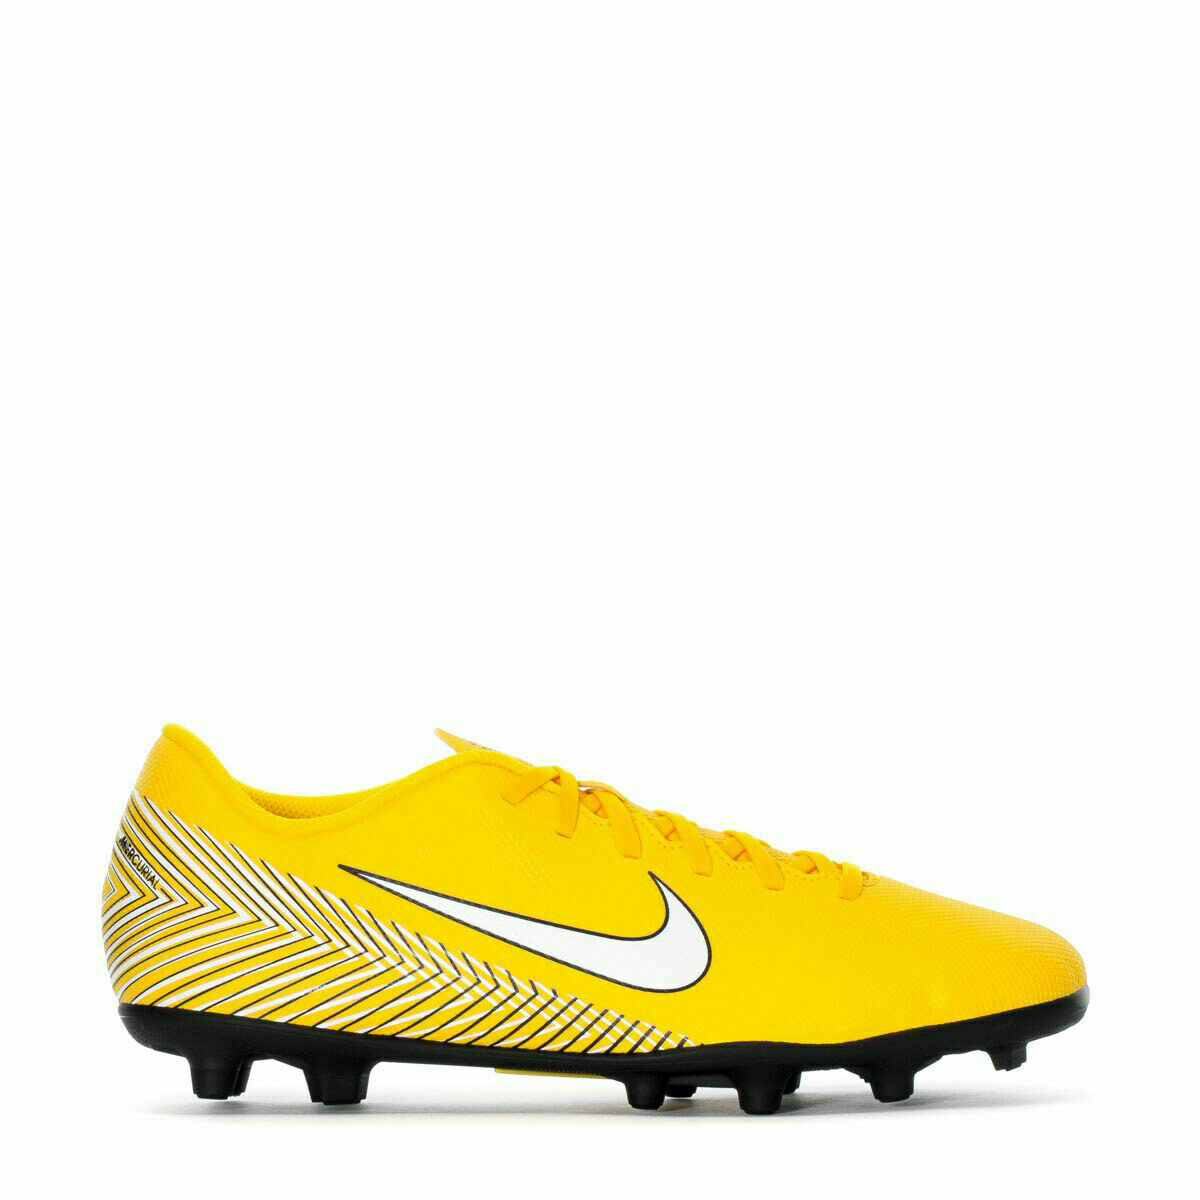 Nike Mercurial Vapor 12 Club Neymar Mg M AO3129-710 Football Cleats